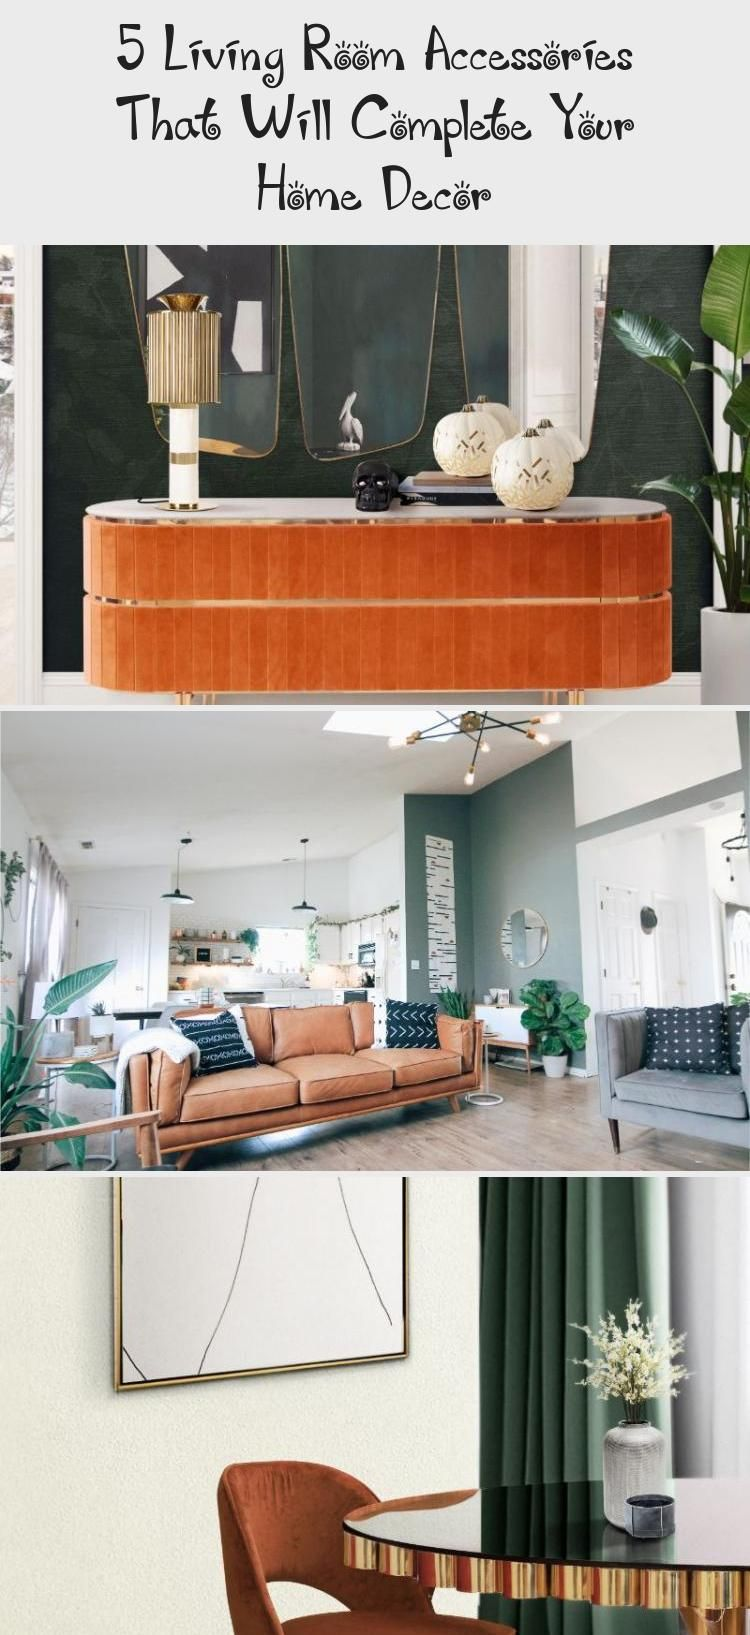 5 Living Room Accessories That Will Complete Your Home In 2020 Home Decor Living Room Accessories Decor